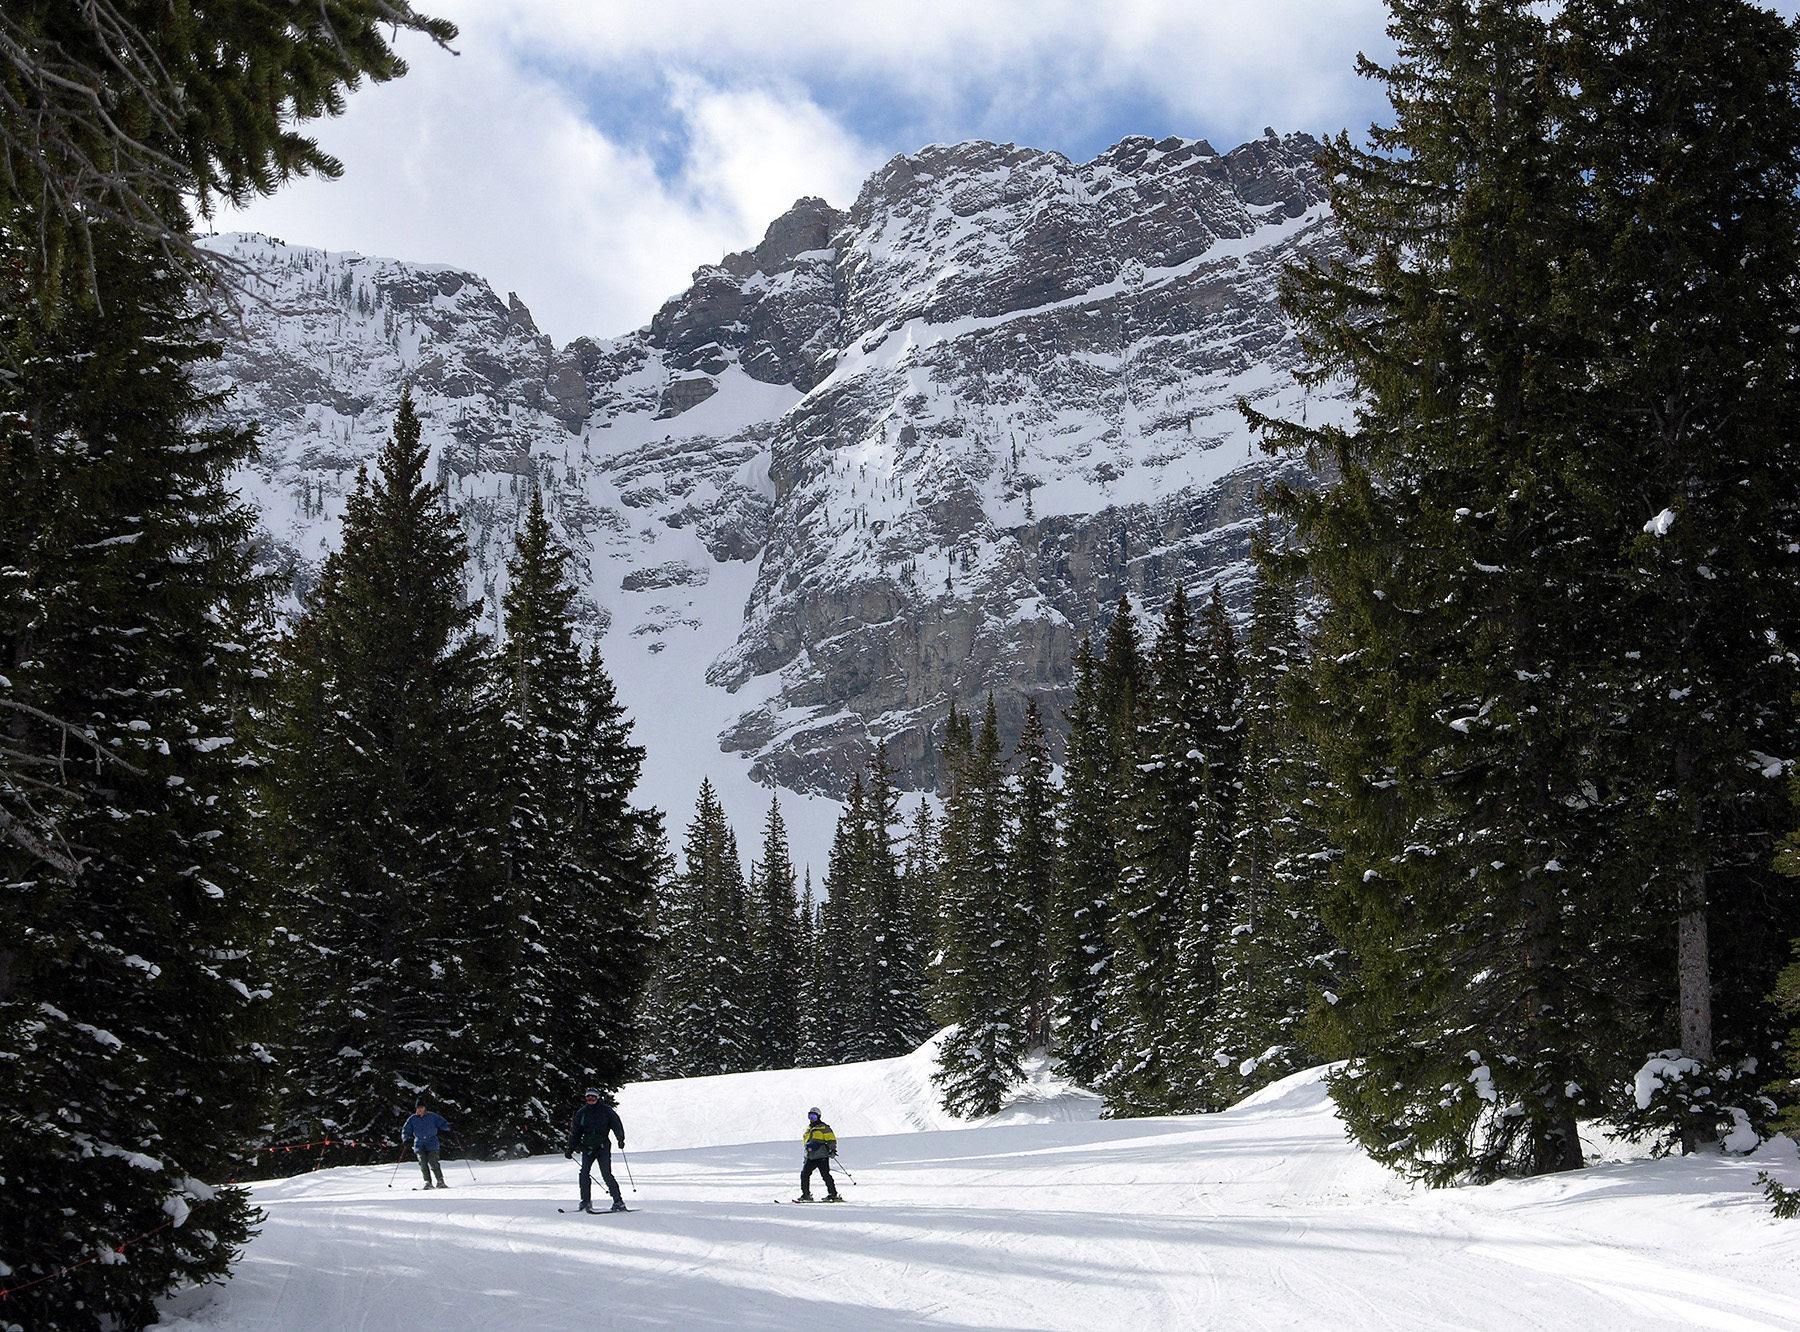 A family skiing at Alta Resort in Salt Lake City.